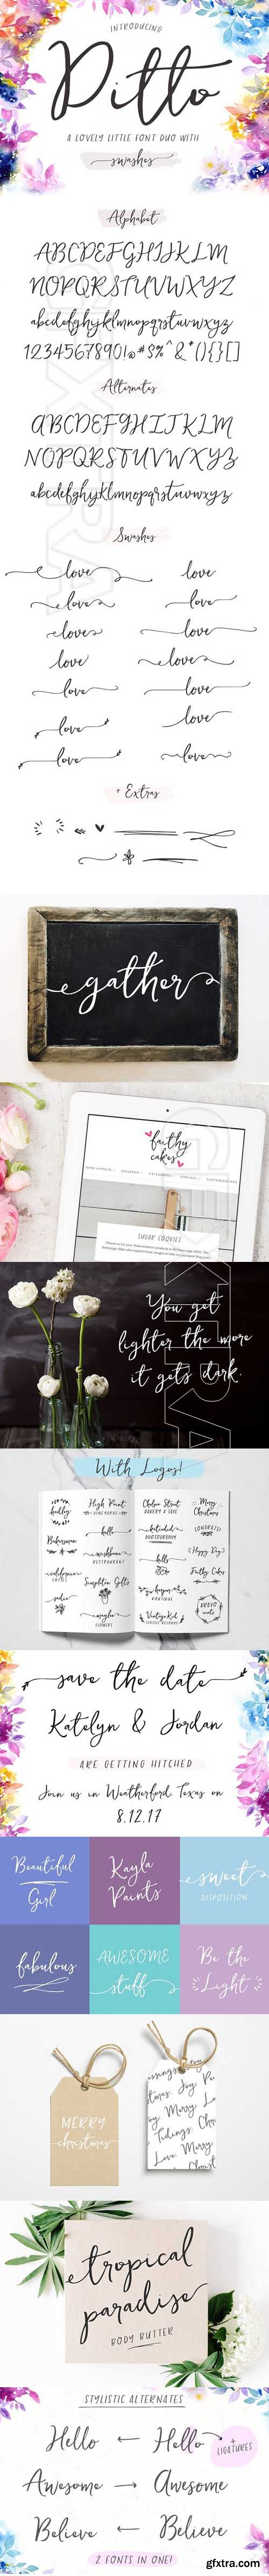 CreativeMarket - Ditto Font + Swashes 1625725